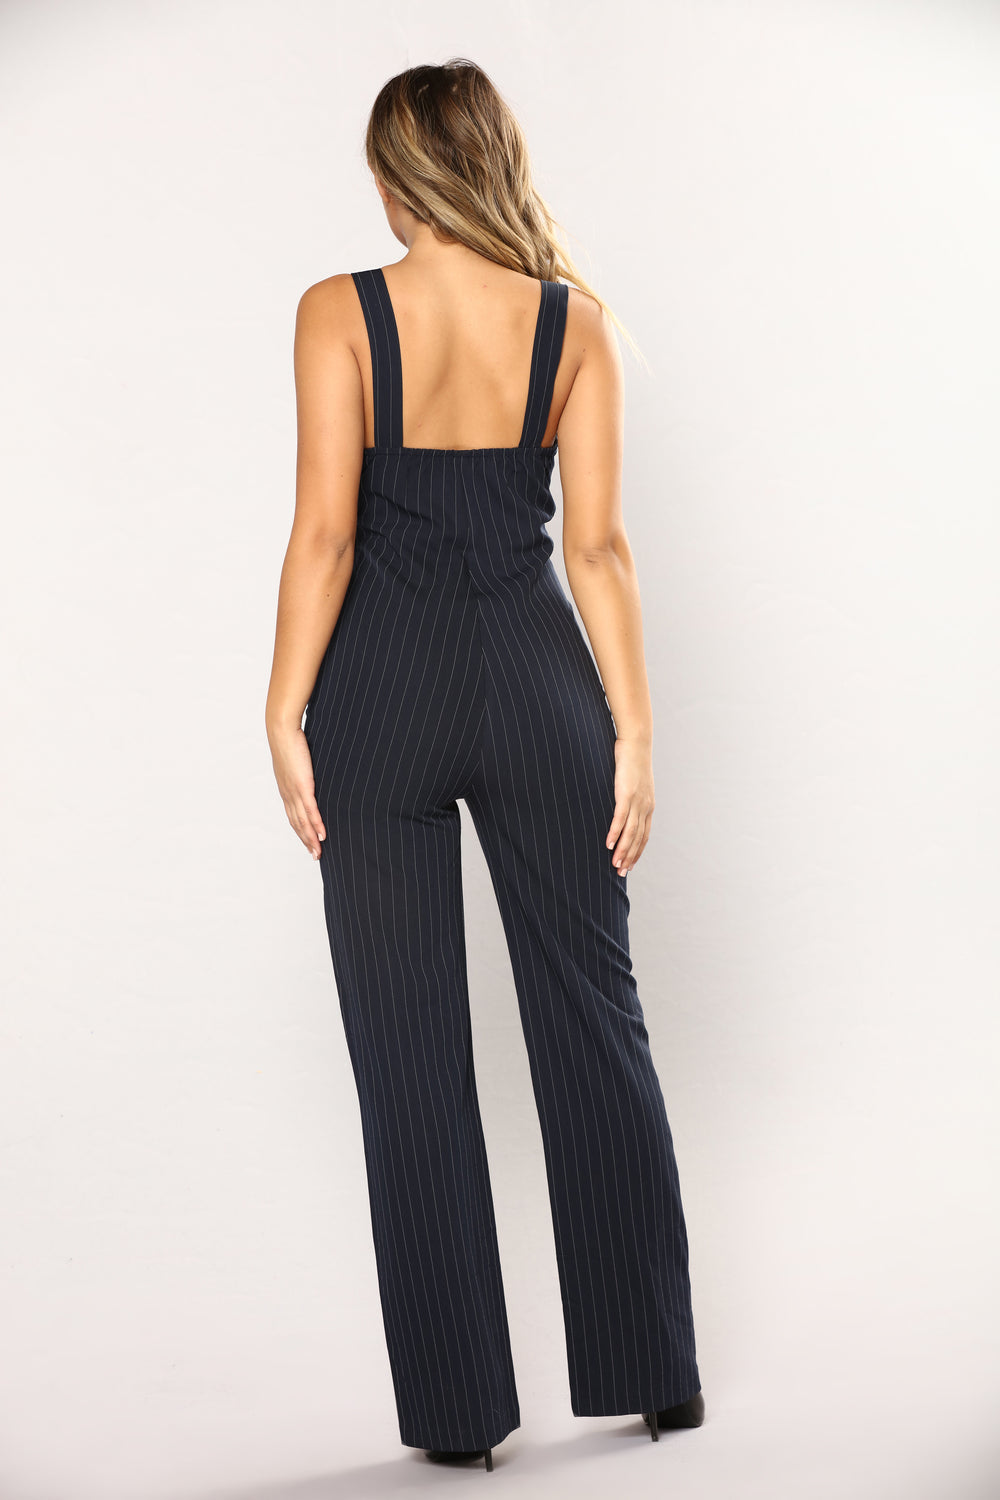 Unavailable At The Moment Stripe Jumpsuit - Navy